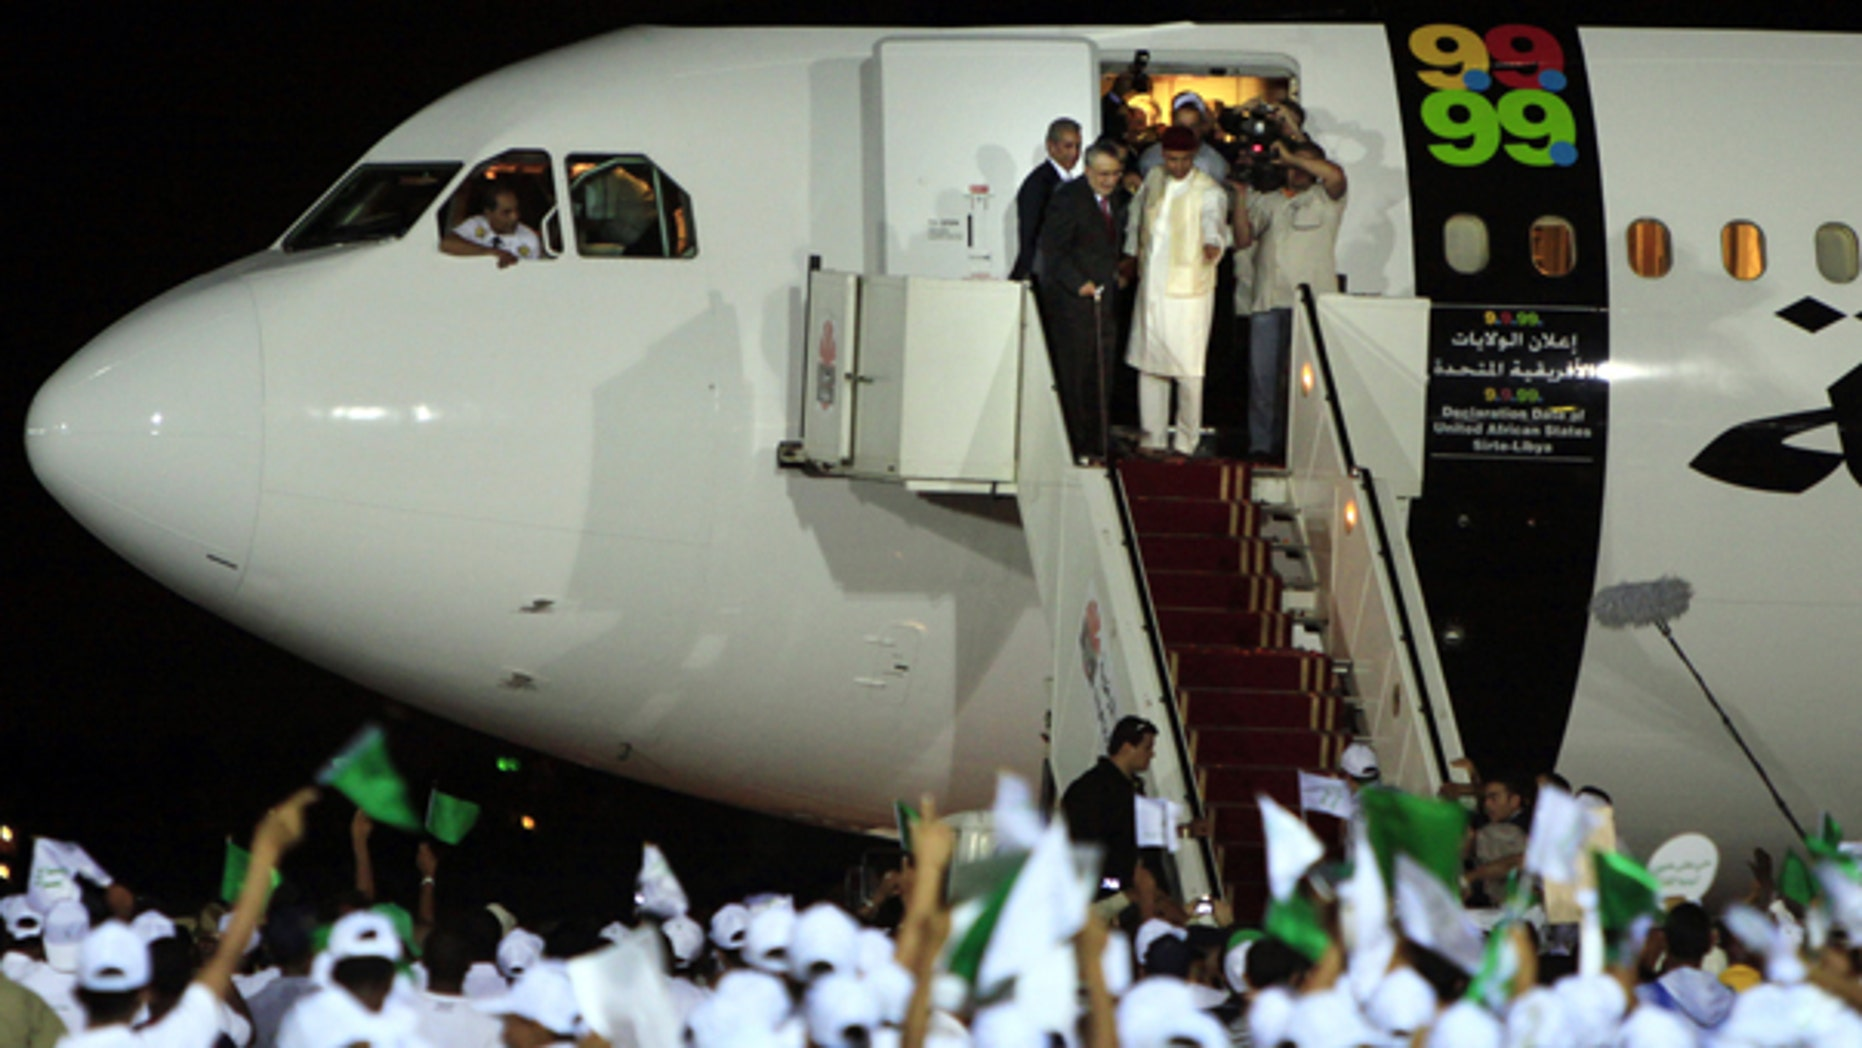 In this Aug. 20, 2009 file photo, hundreds of Libyans an airport in Tripoli welcome Abdel Baset al-Megrahi, who was found guilty of the 1988 Lockerbie bombing, top left.